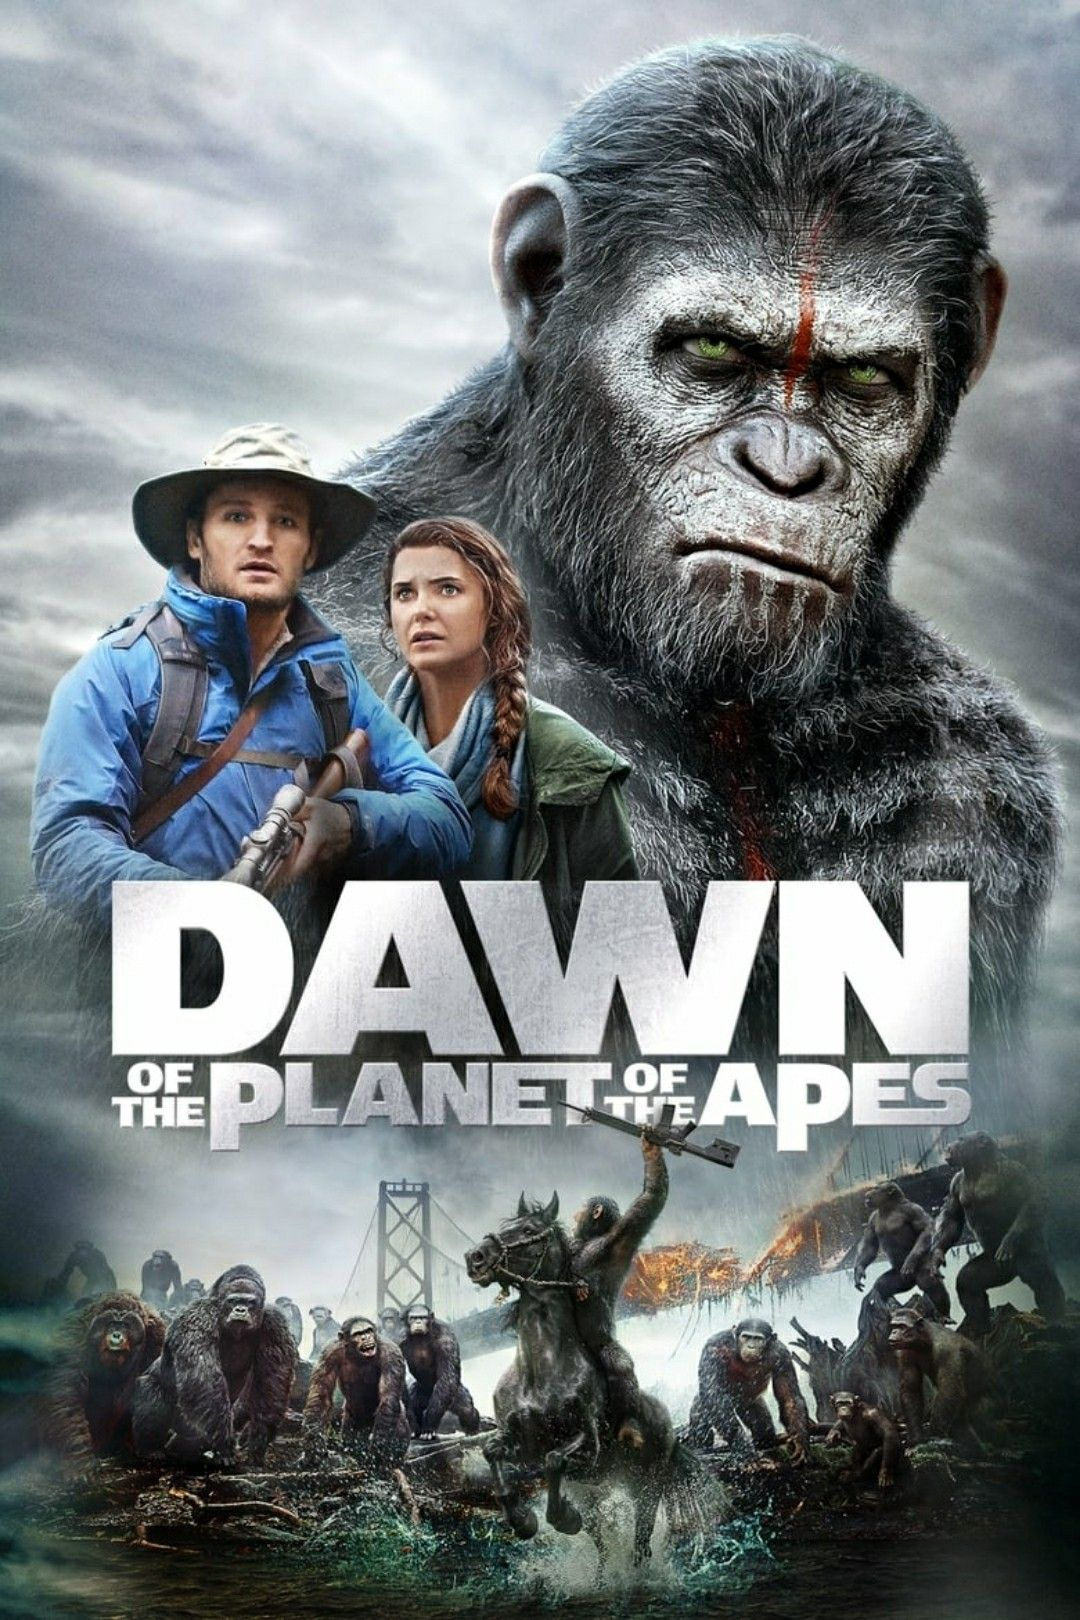 Dawn Of The Planet Of The Apes 惑星 映画 世紀